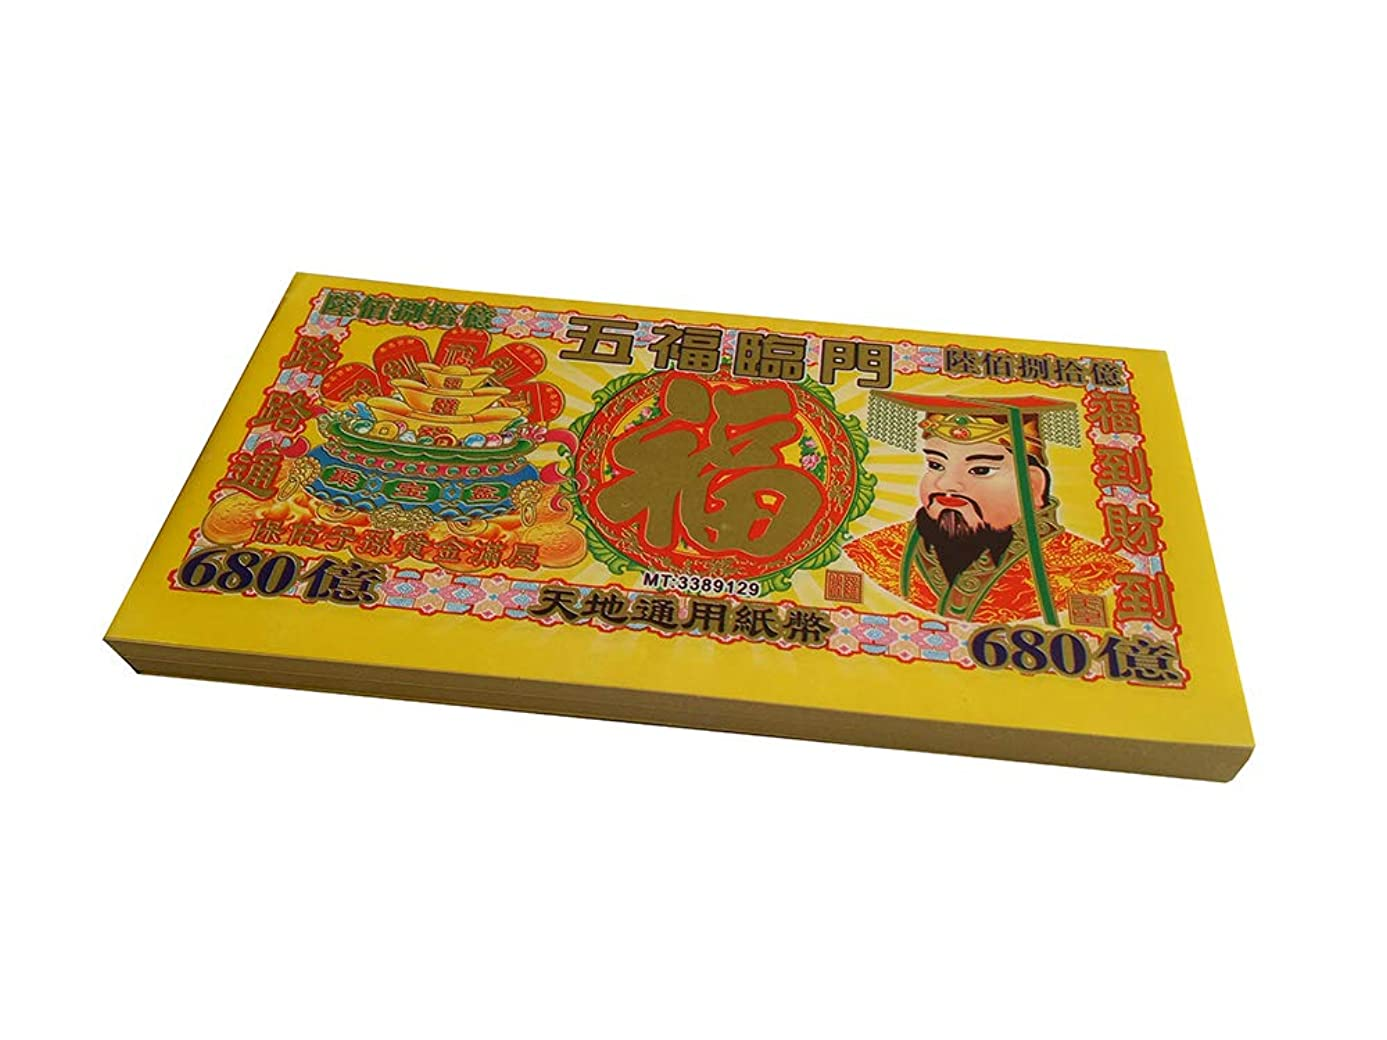 パントリーポータル特許zeestar Chinese Joss Paper Money,祖先Money (68,000,000,000?)?–?Wufu linmen、100個